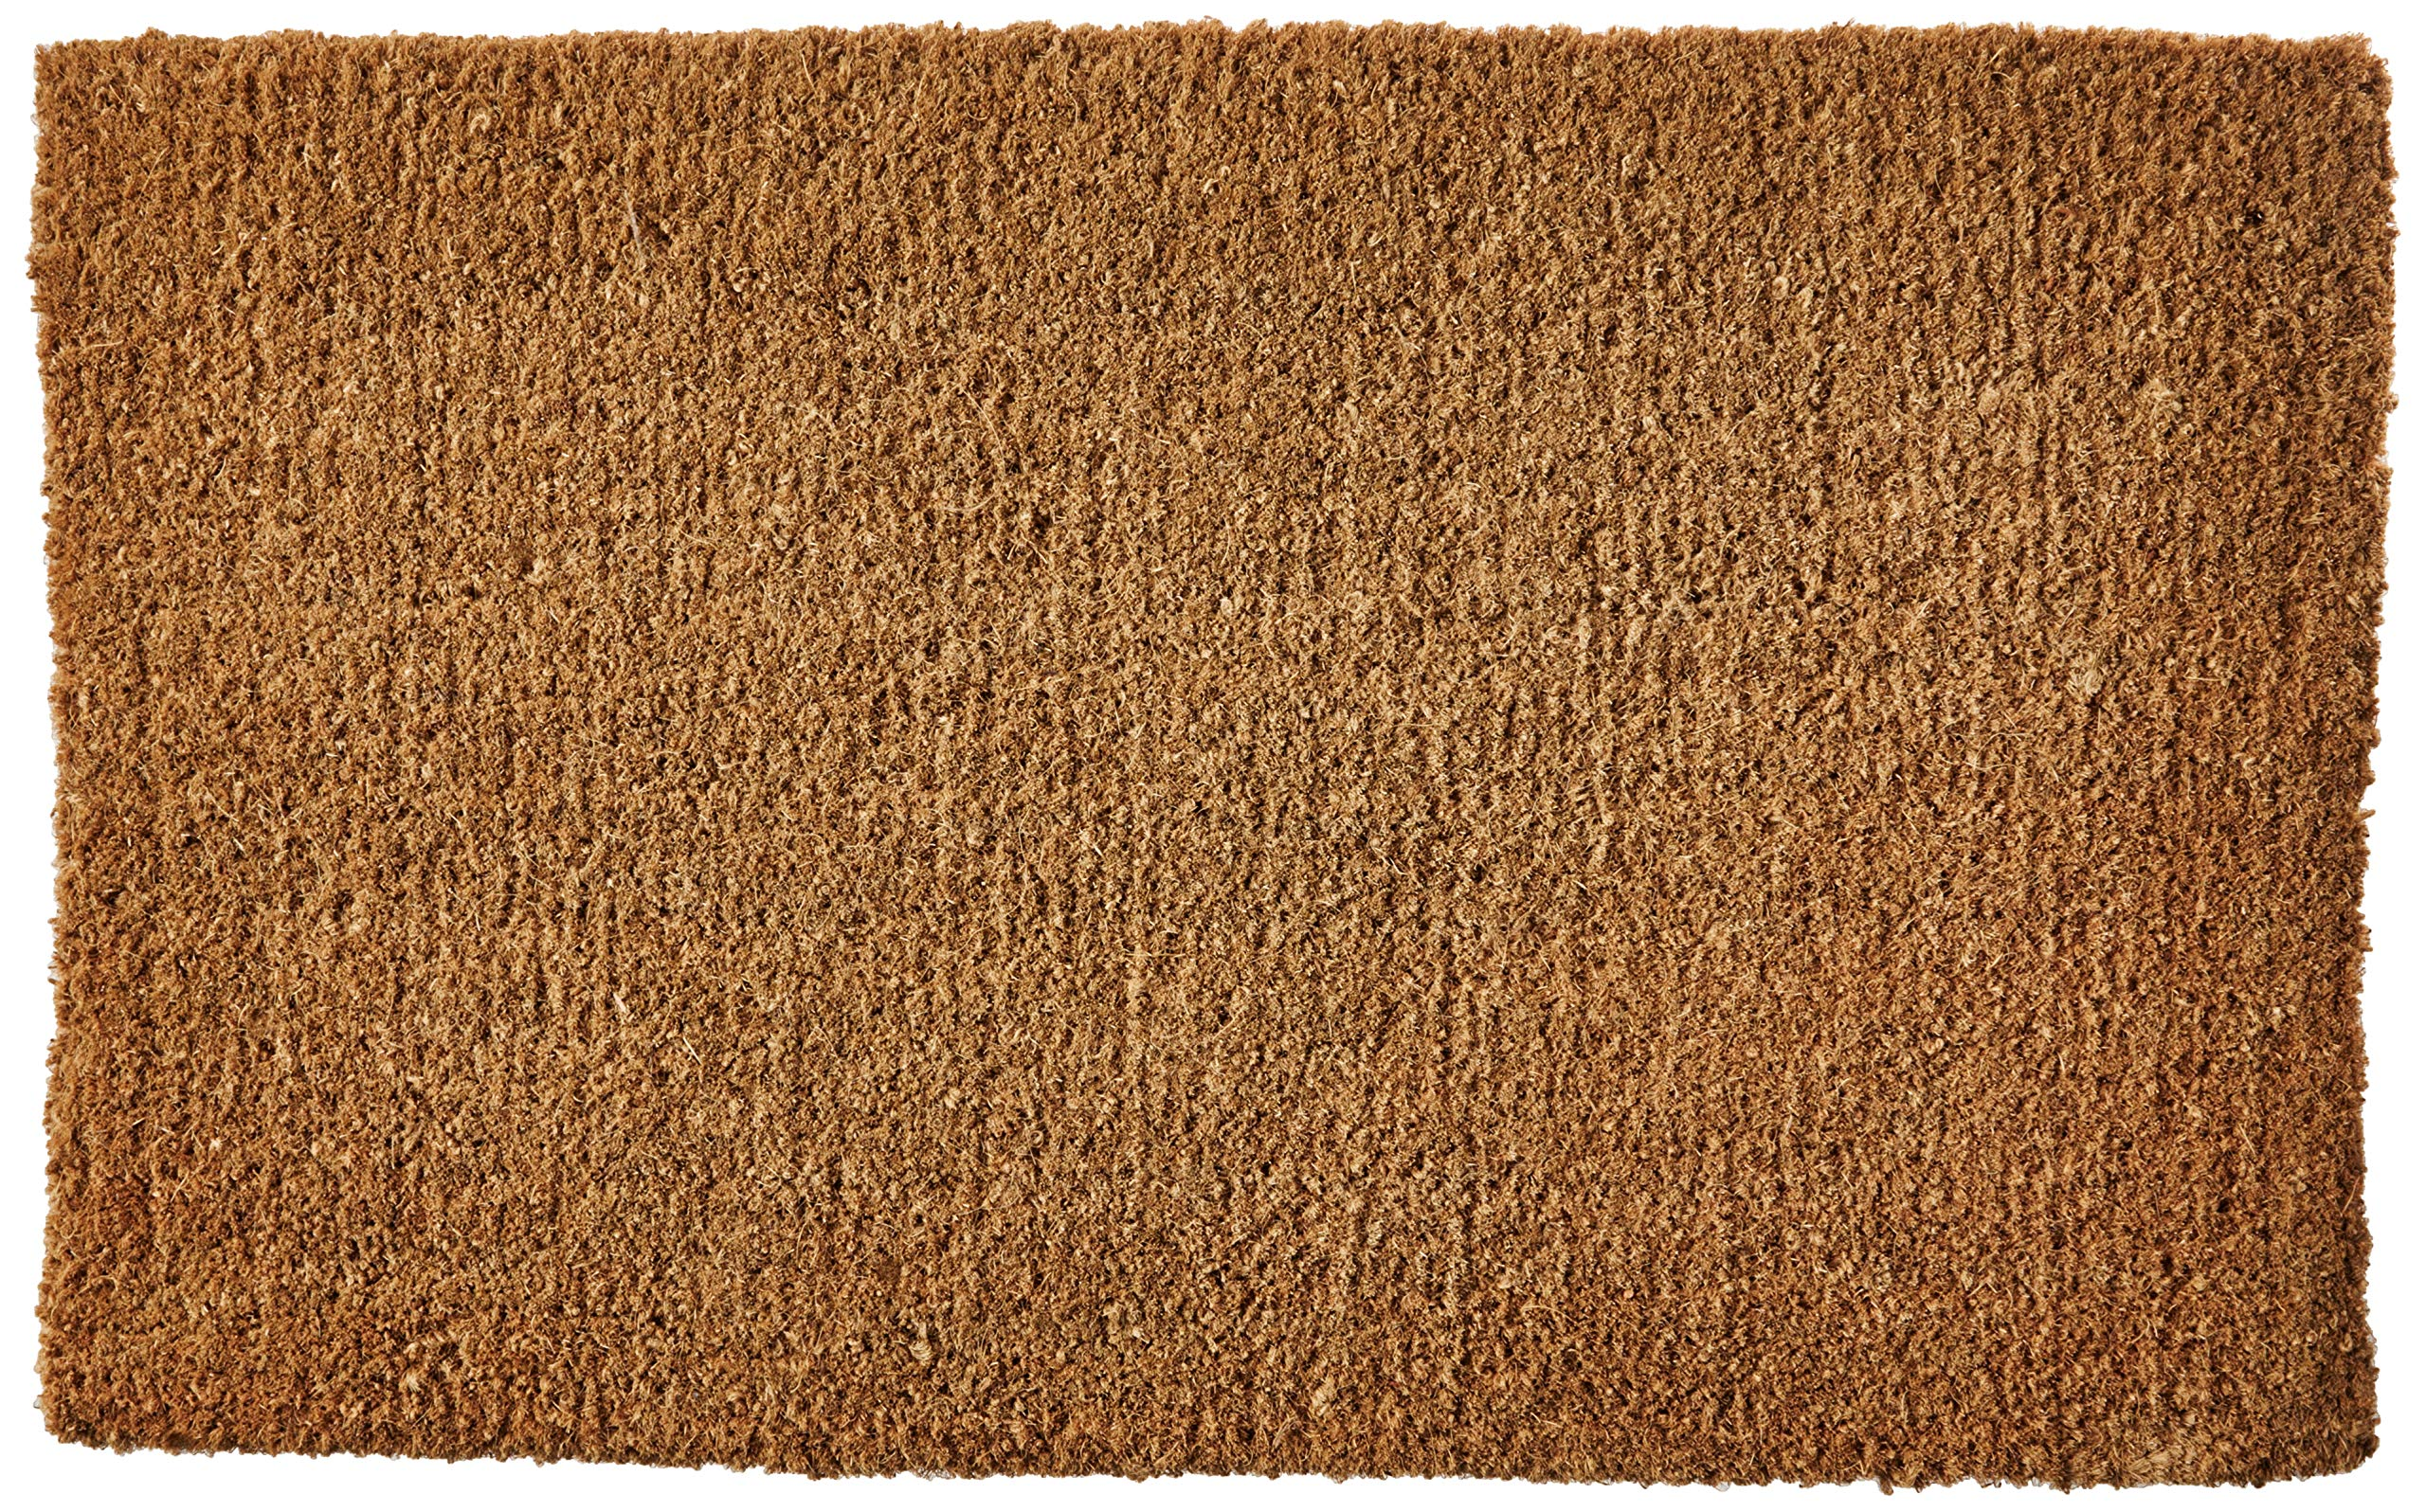 Kempf Natural Coco Coir Doormat, 22-inch by 36-inch, 1'' Thick Low